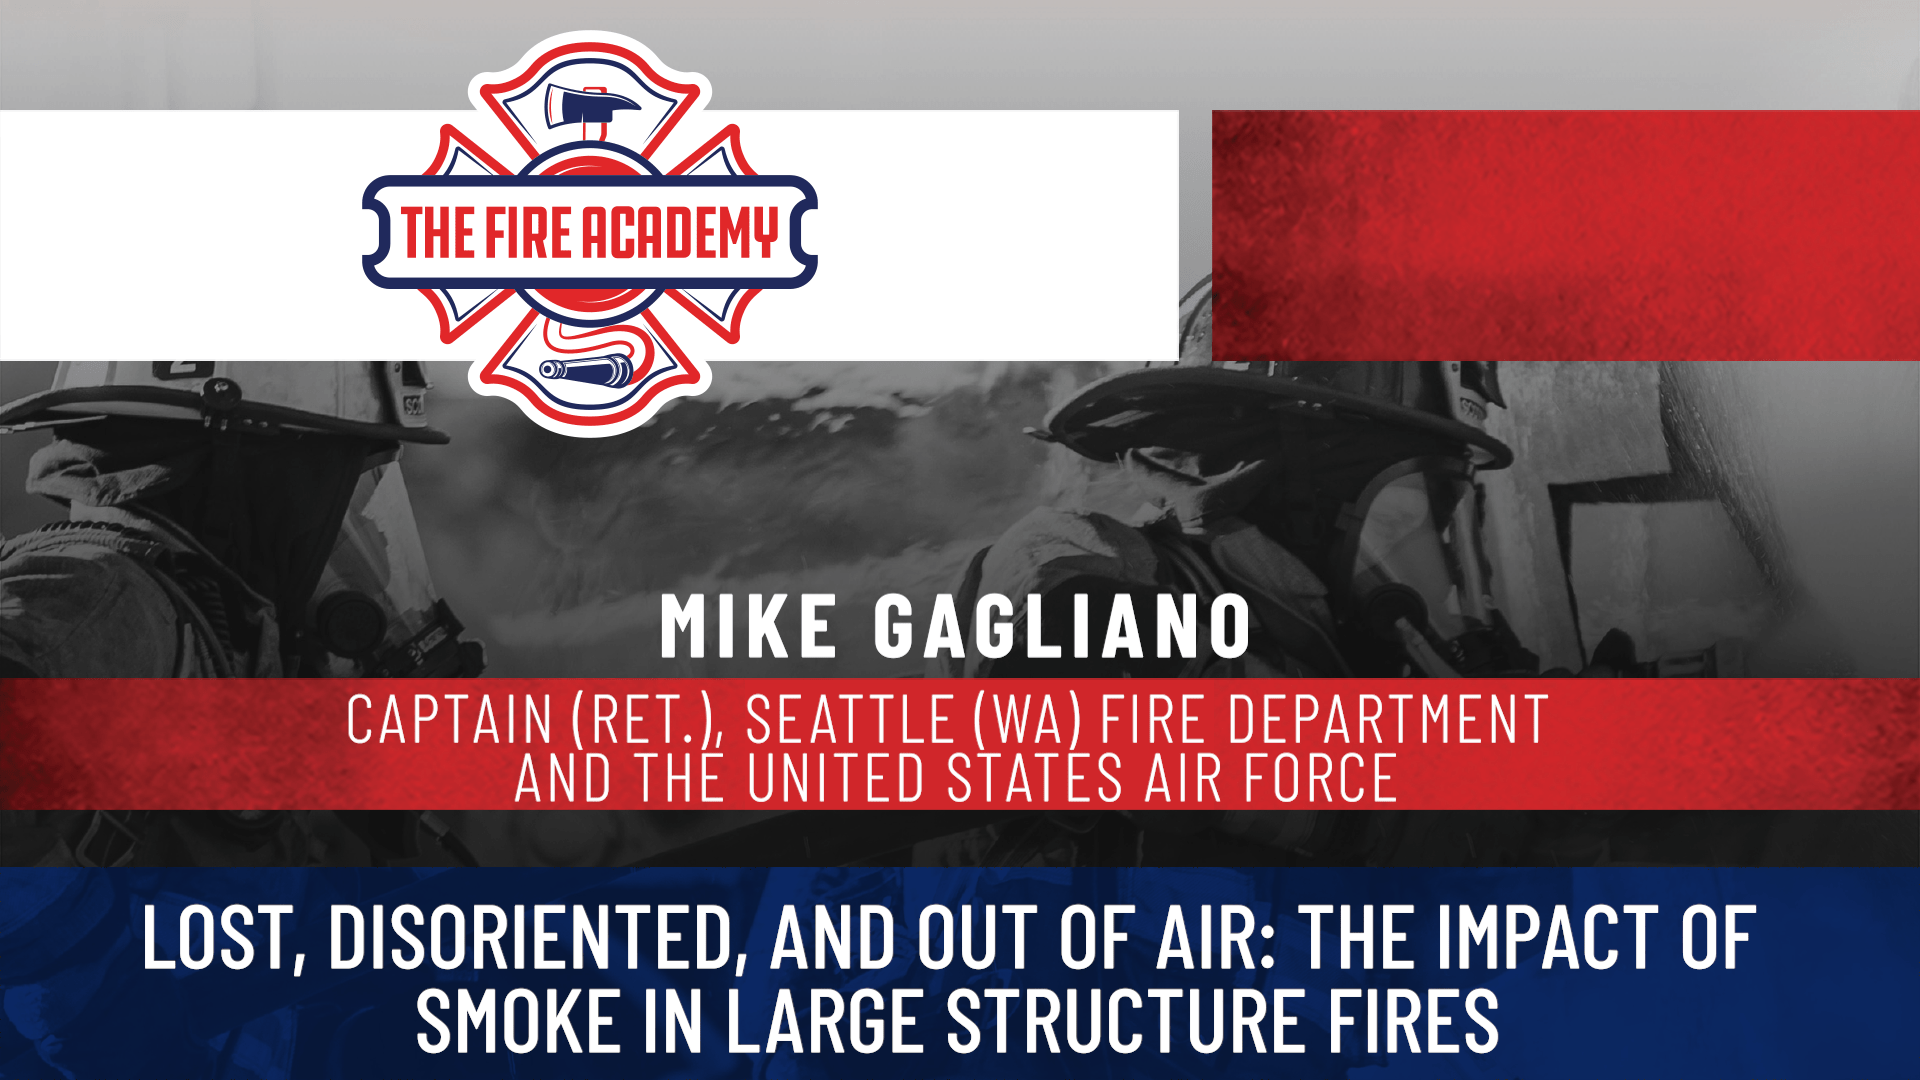 Lost, Disoriented and Out of Air: The Impact of Smoke in Large Structure Fires